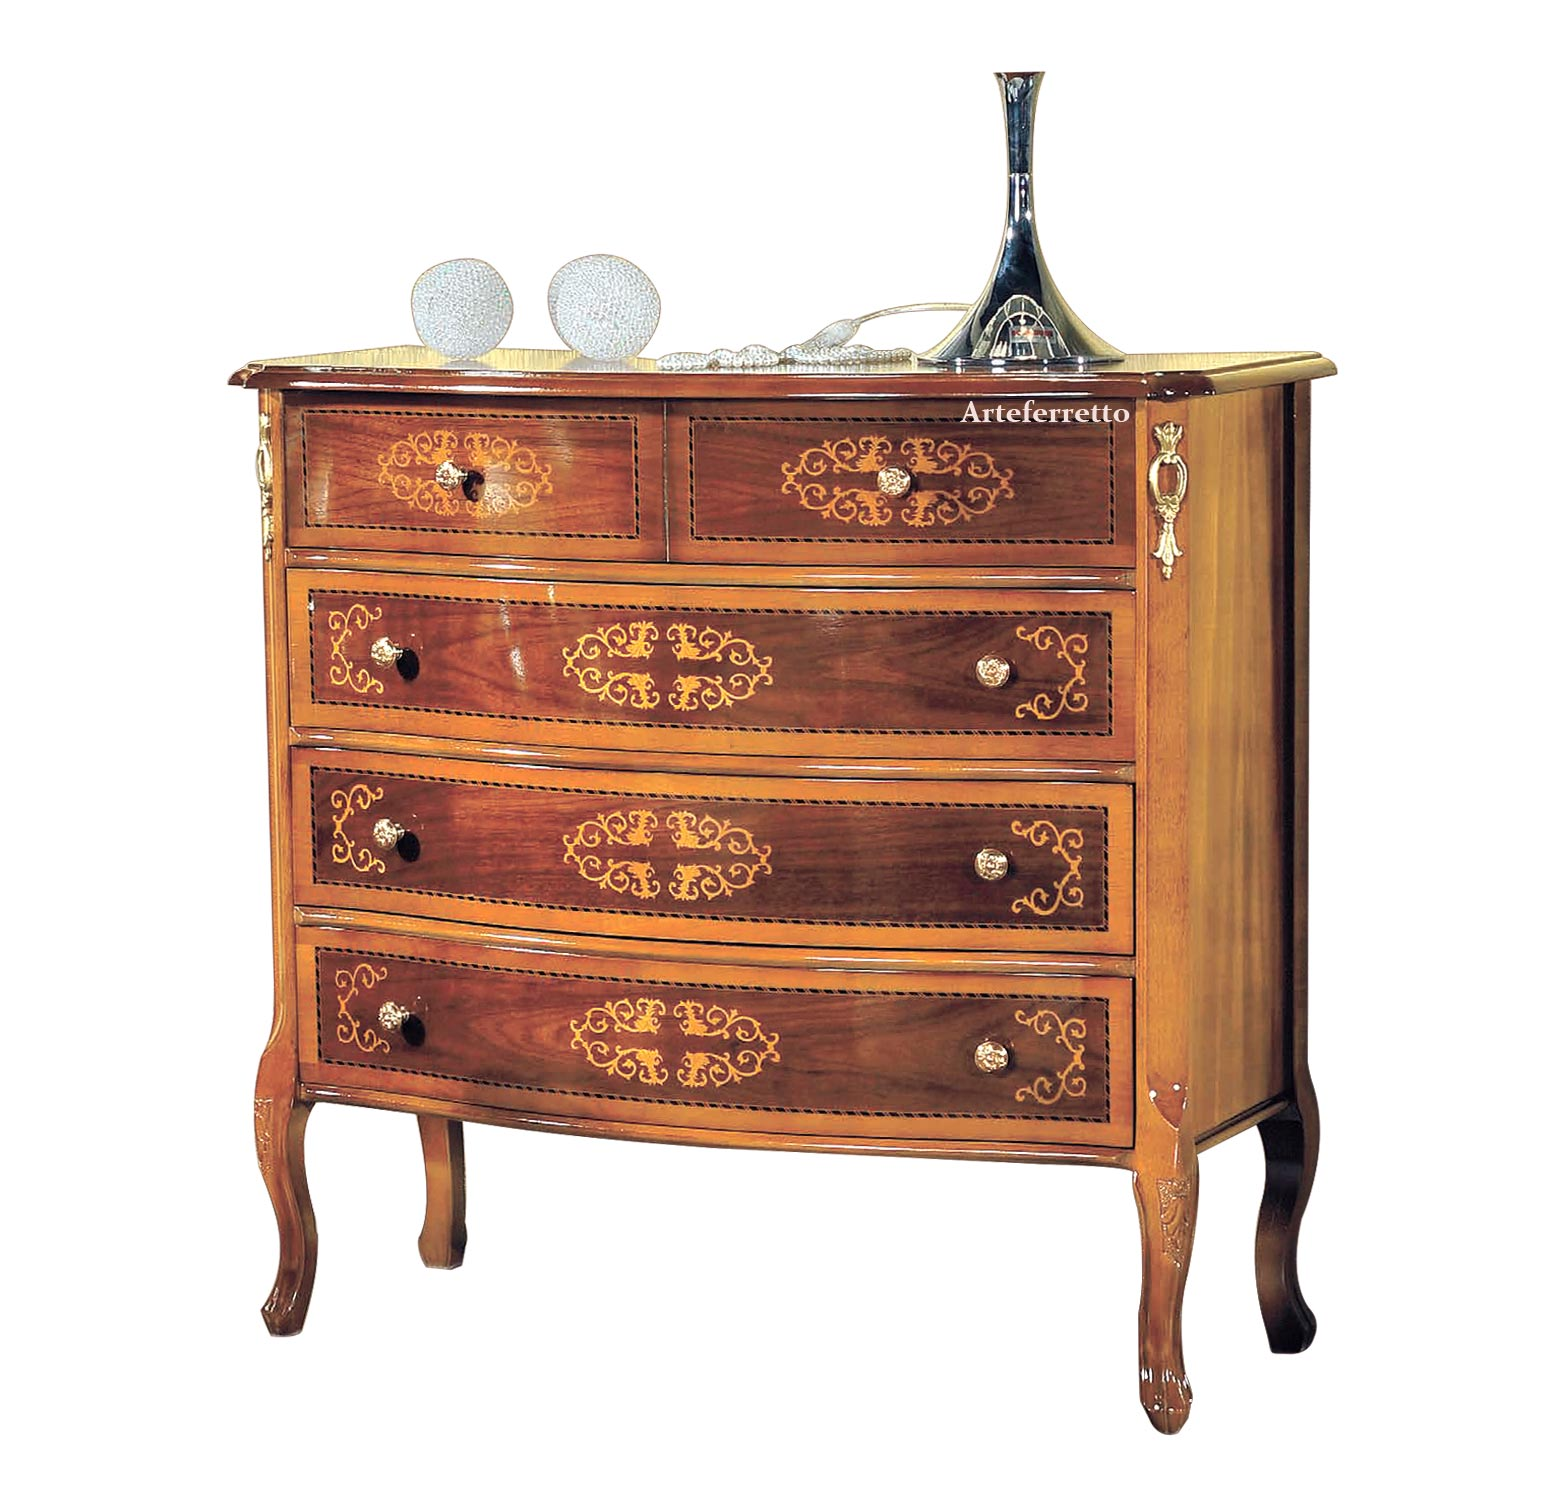 Commode 4 tiroirs avec marqueteries